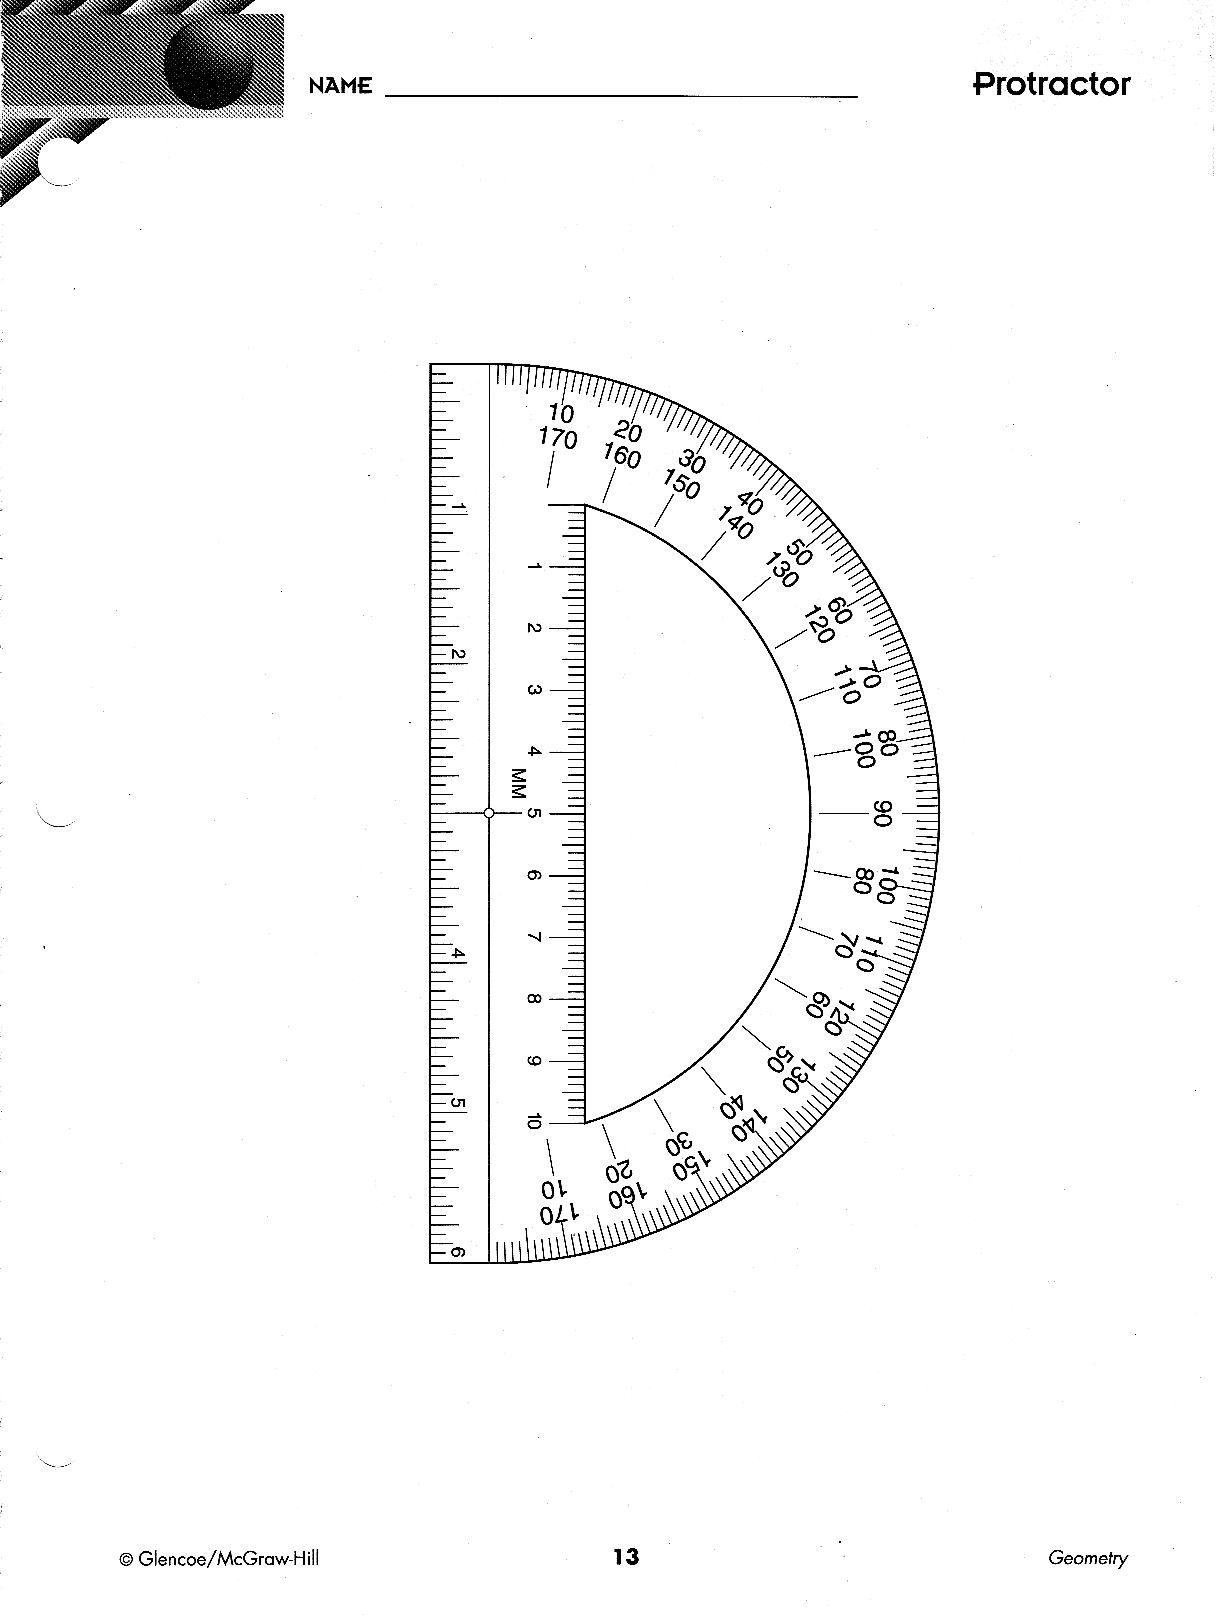 worksheet Protractor Print worksheet print a protractor gabrieltoz worksheets for precalculus paper and patterns 13 on clear plastic jpg